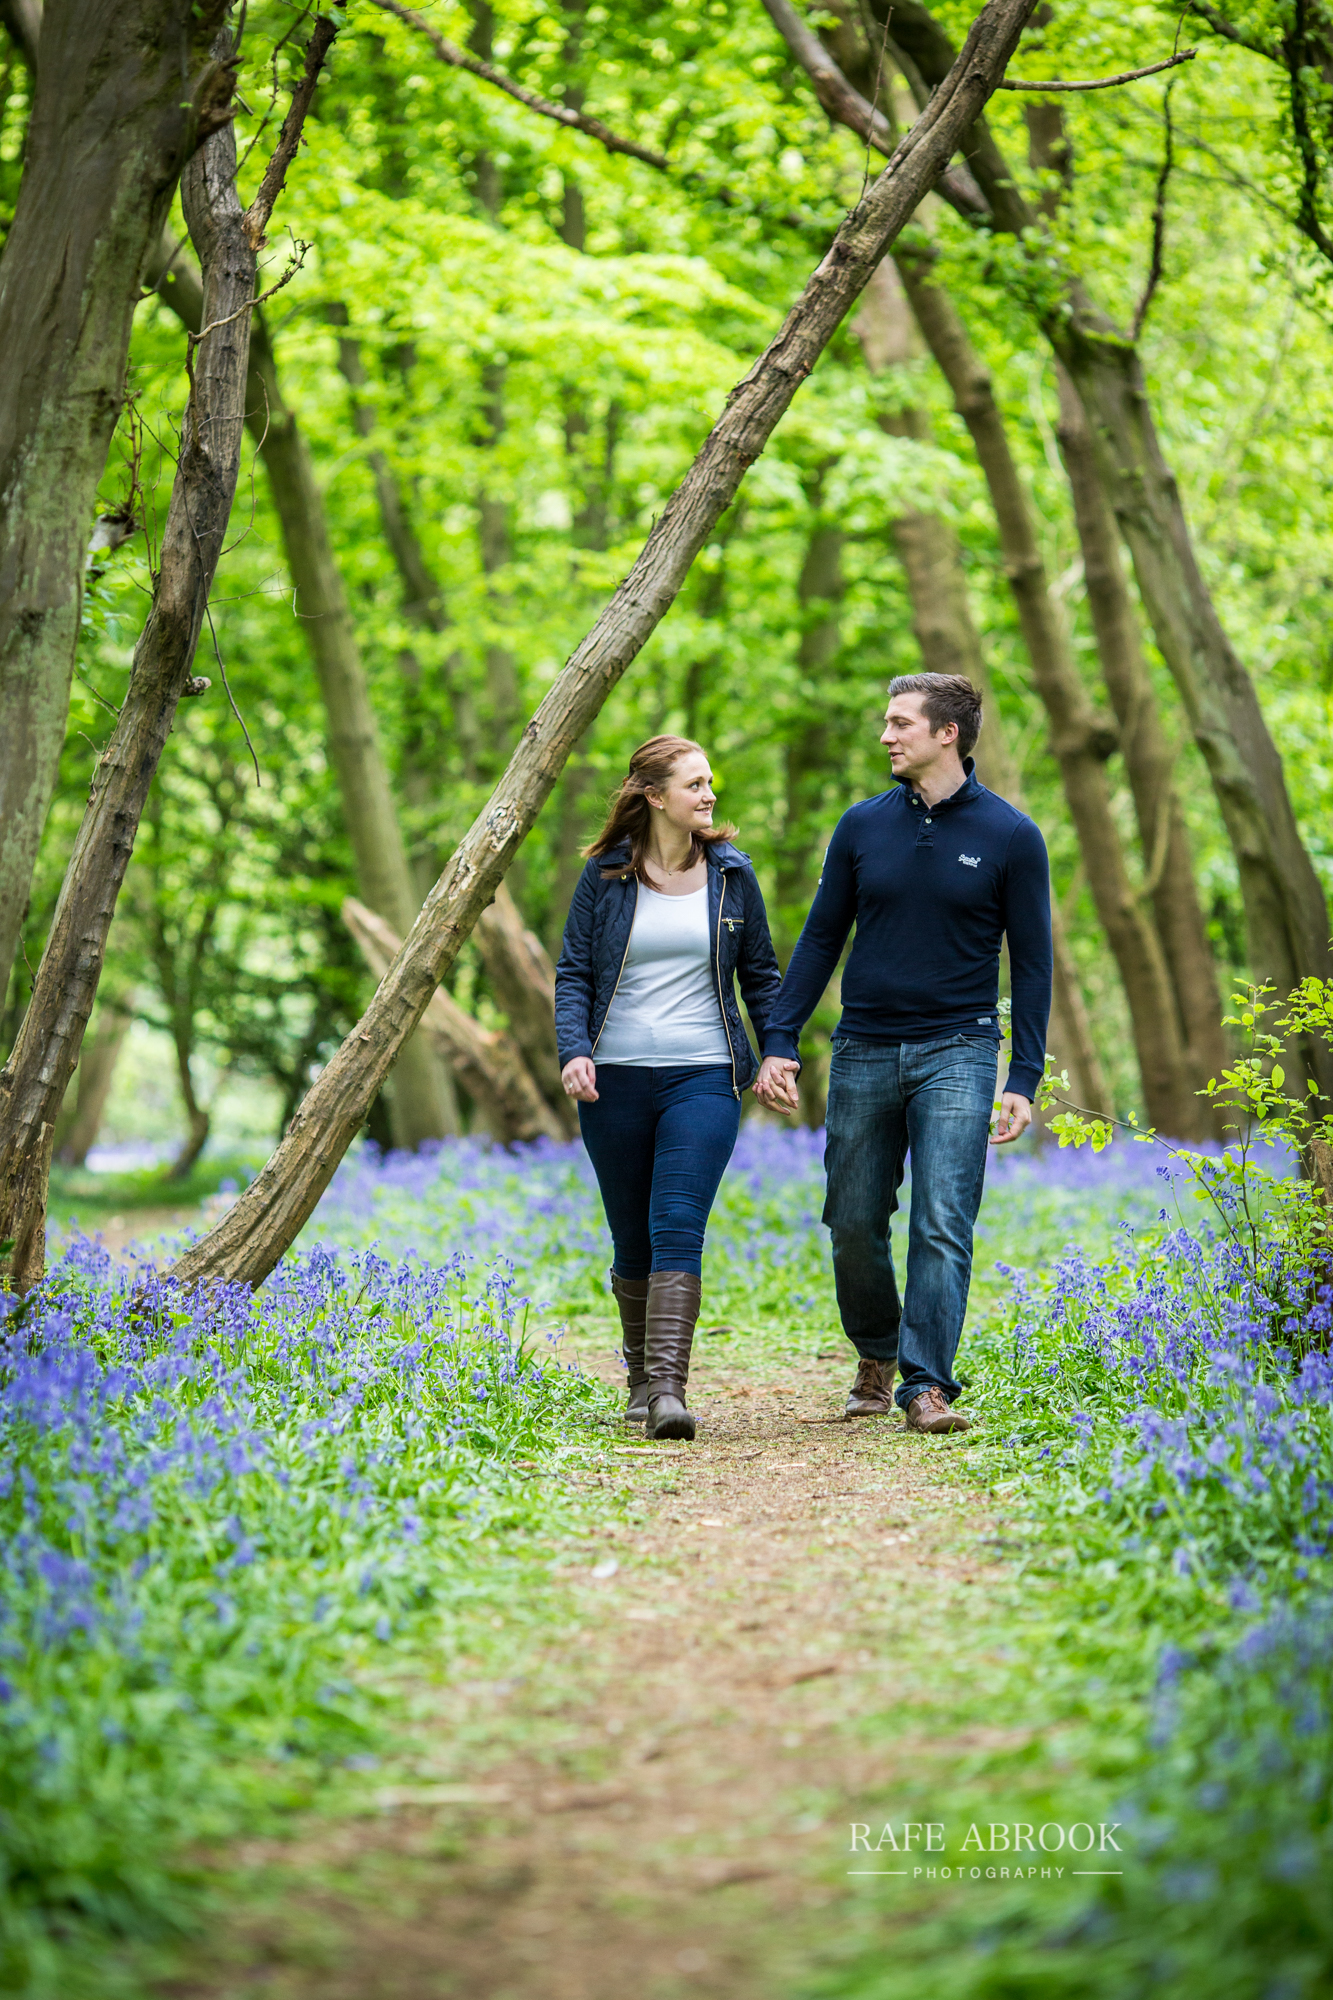 george & amelia heartwood forest st albans hertfordshire engagement shoot-1028.jpg